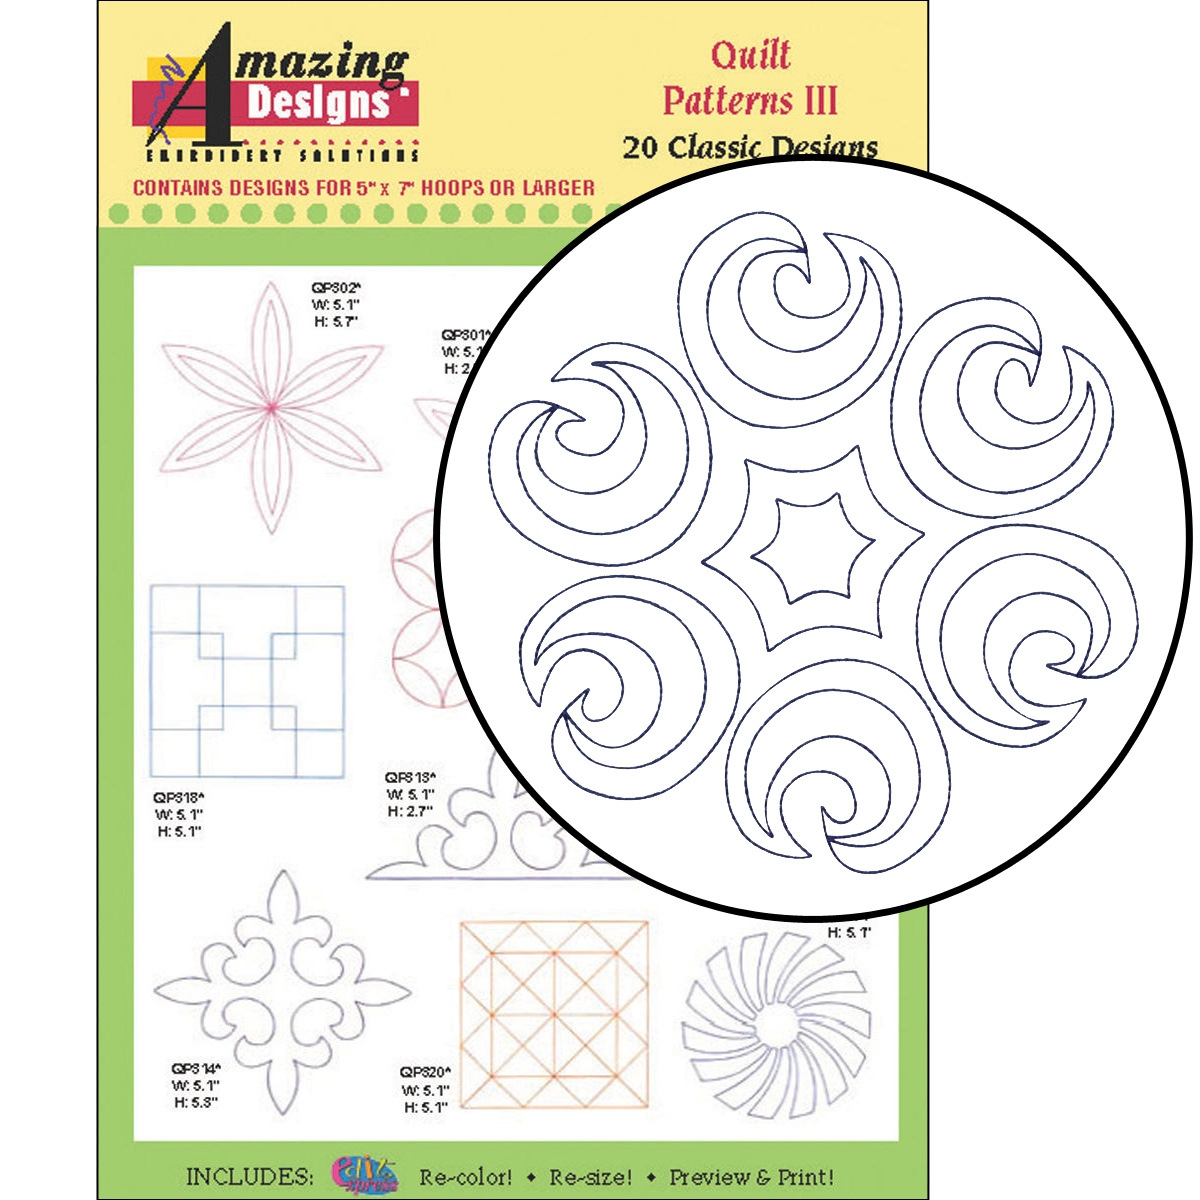 Embroidery Designs Patterns Amazing Designs Quilt Patterns Iii Embroidery Designs